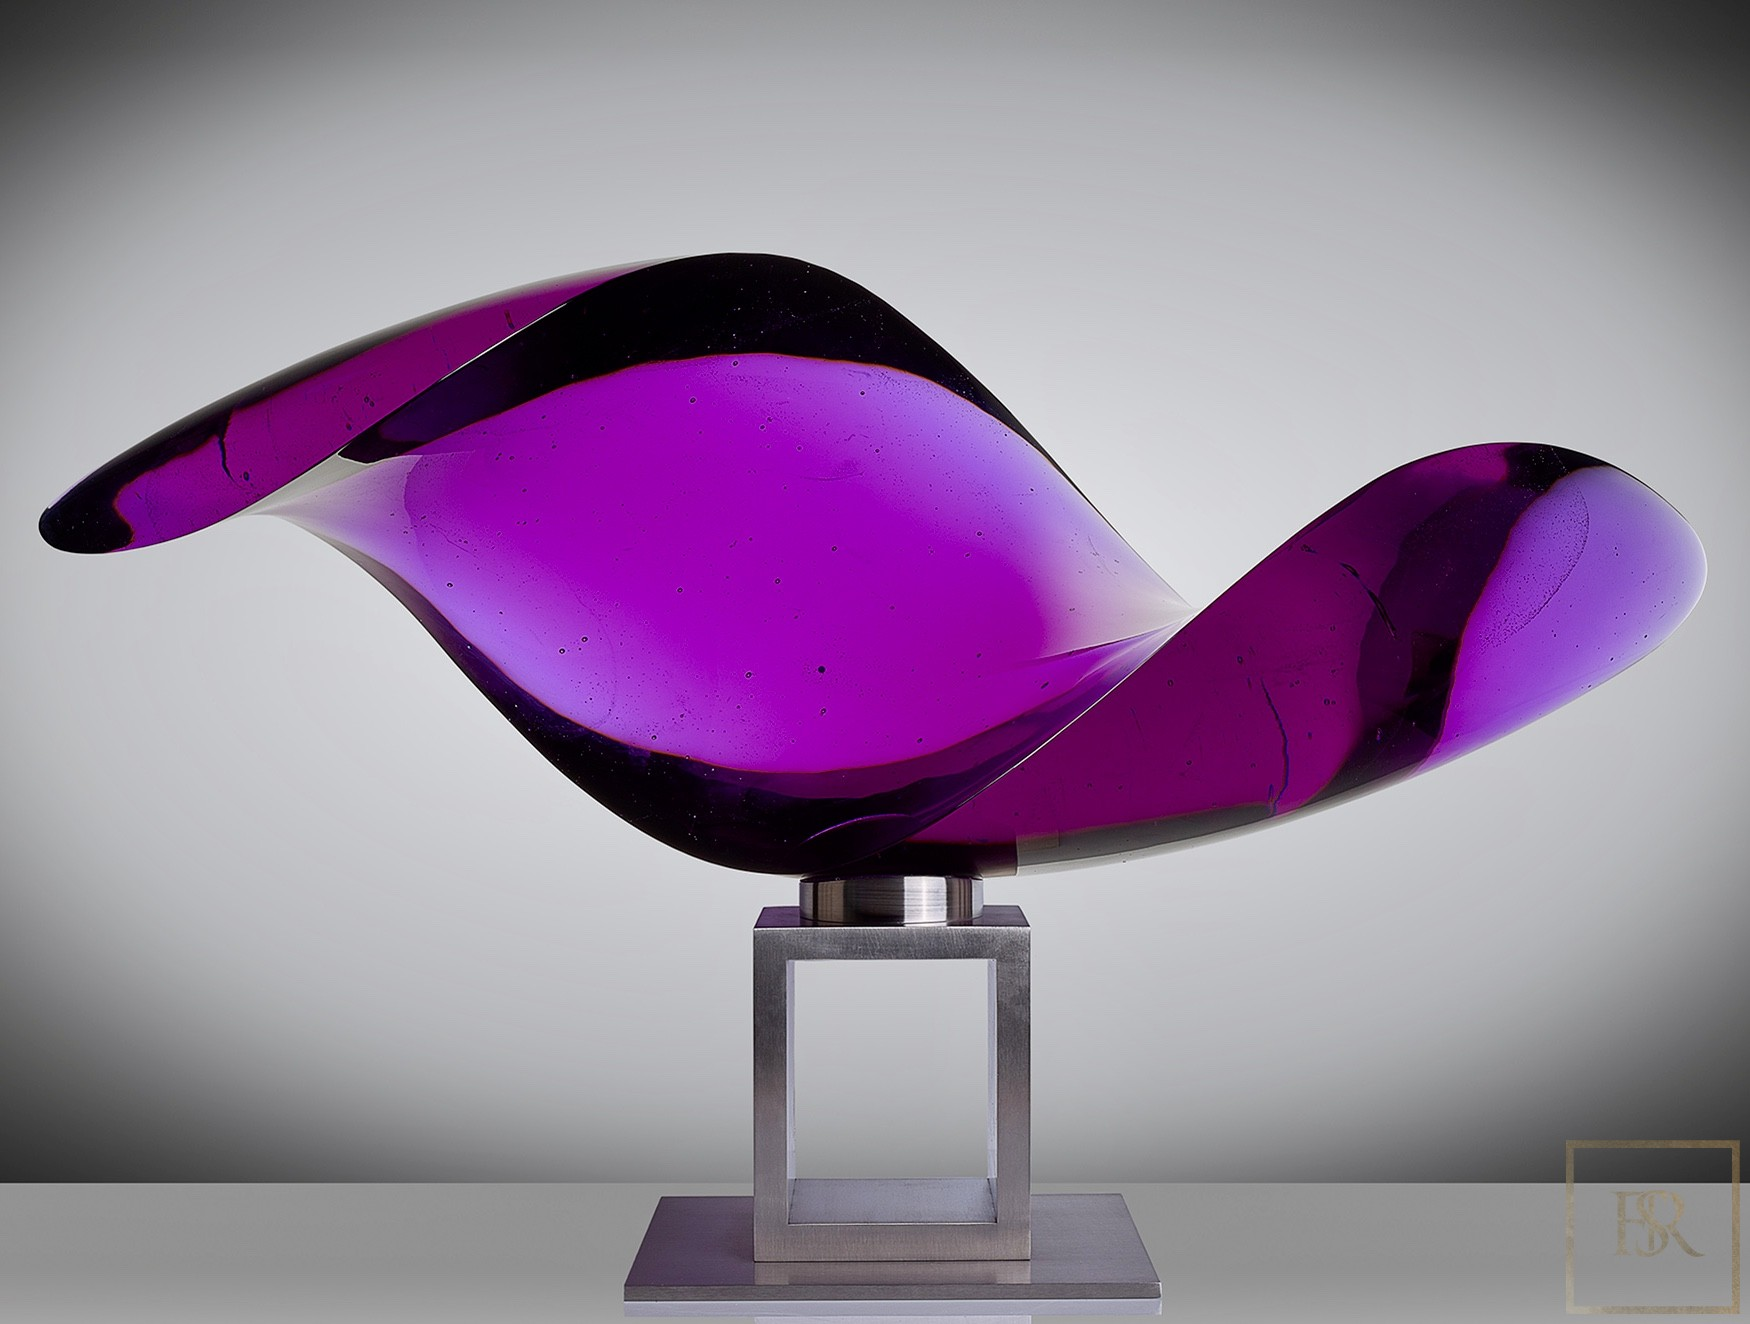 Most expensive unique ultra luxury Art, sculpture, painting, collection, limited edition, pieces of art for sale for super rich